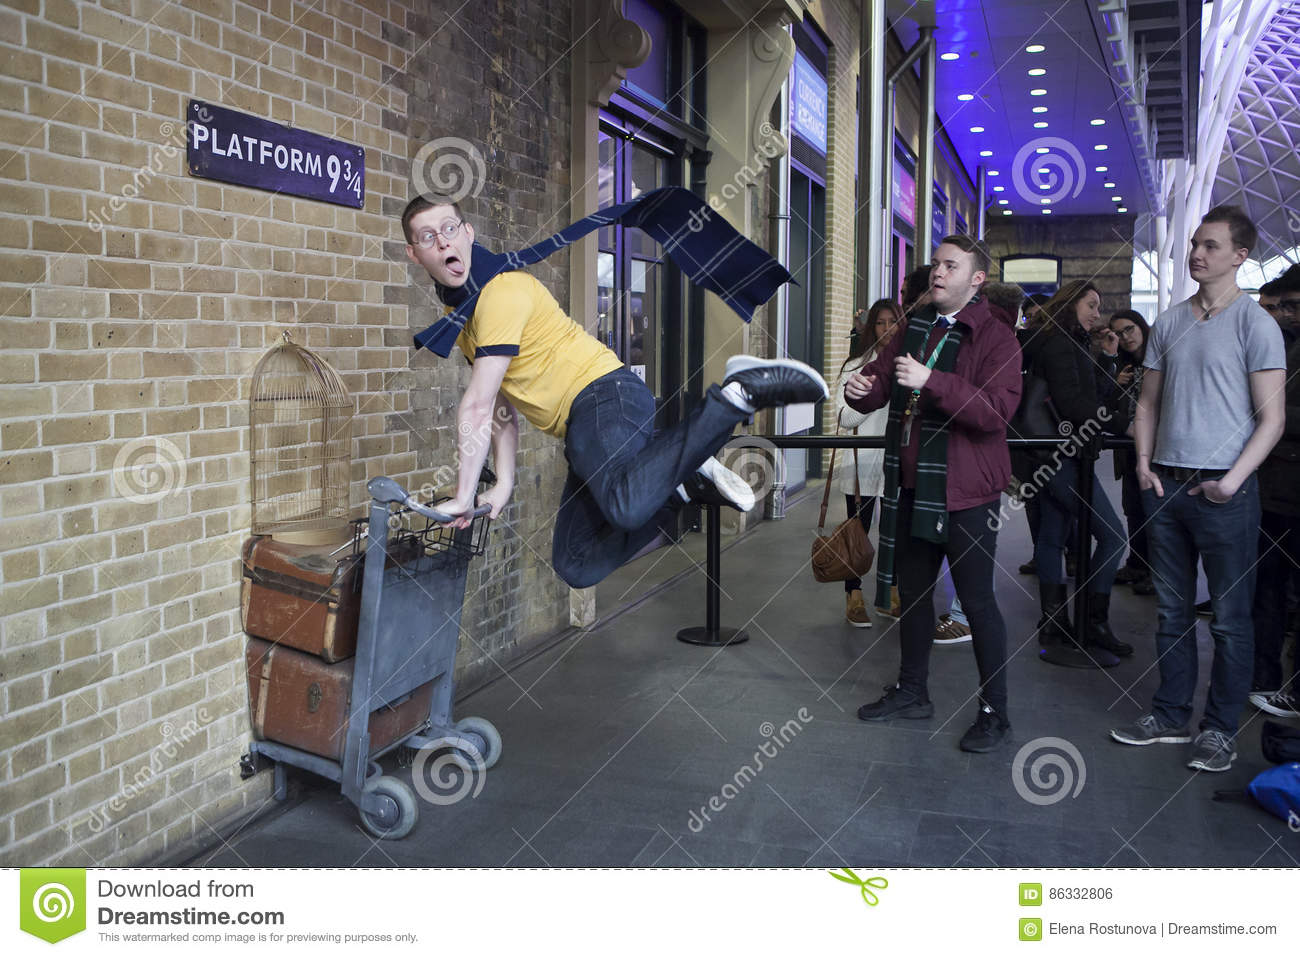 Kings Cross Station Wall Visited By Fans Of Harry Potter To